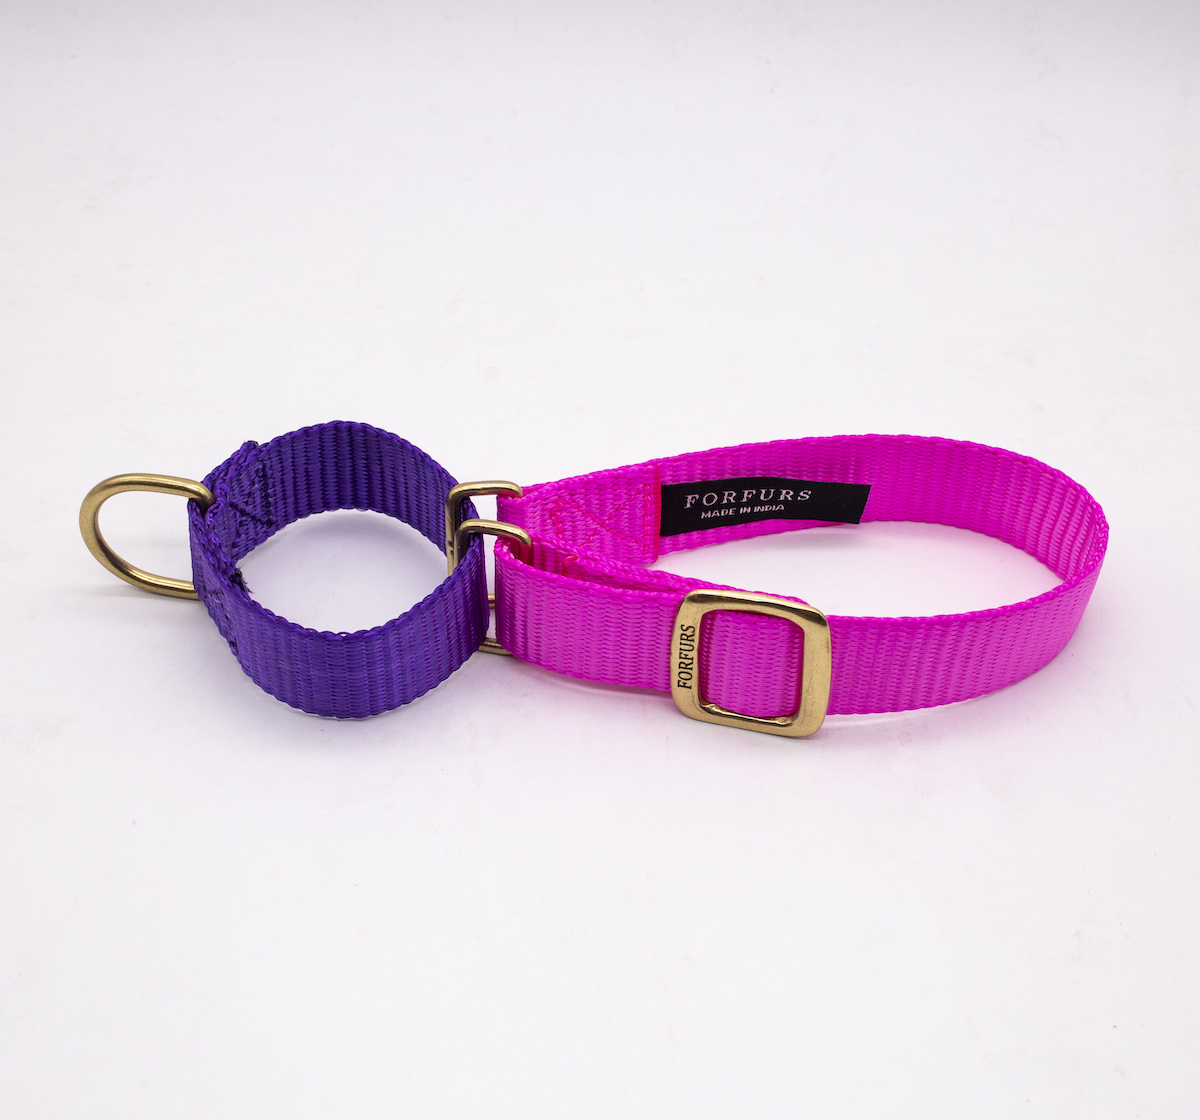 Forfurs Duo Martingale Collar Hot Pink & Ultra Violet - Small